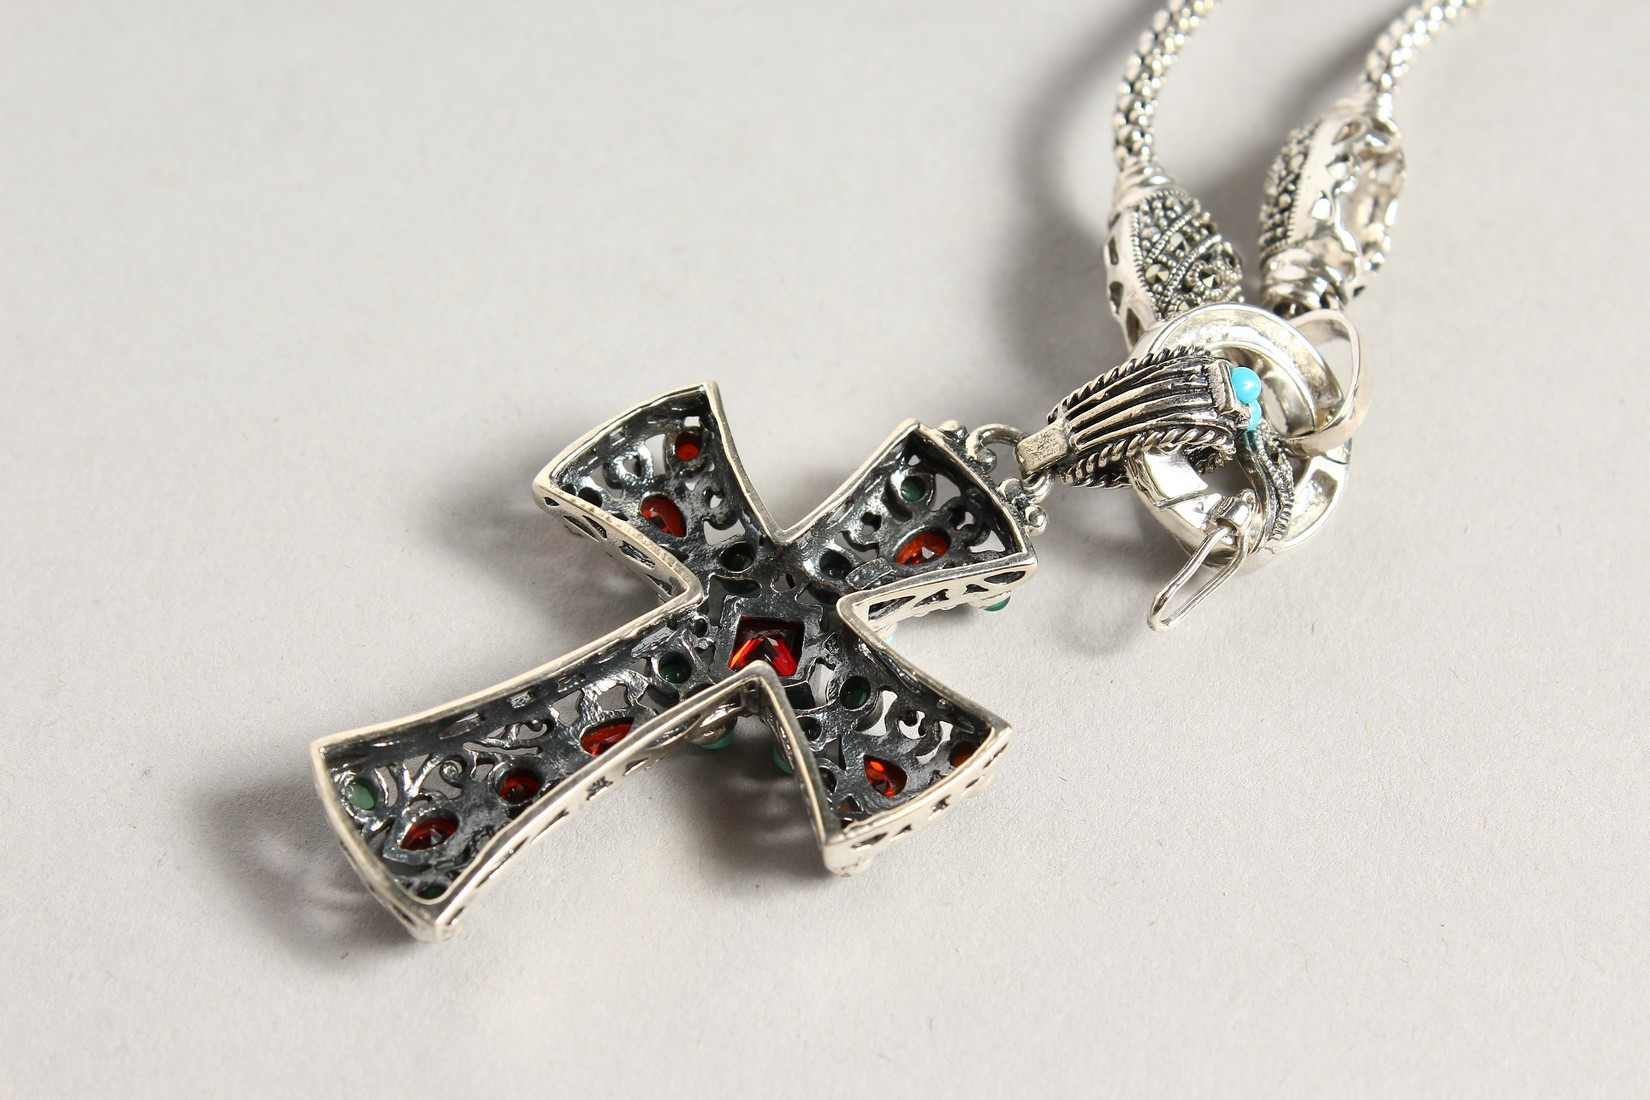 A SILVER TURQUOISE AND GARNET CROSS on a silver chain. - Image 3 of 3